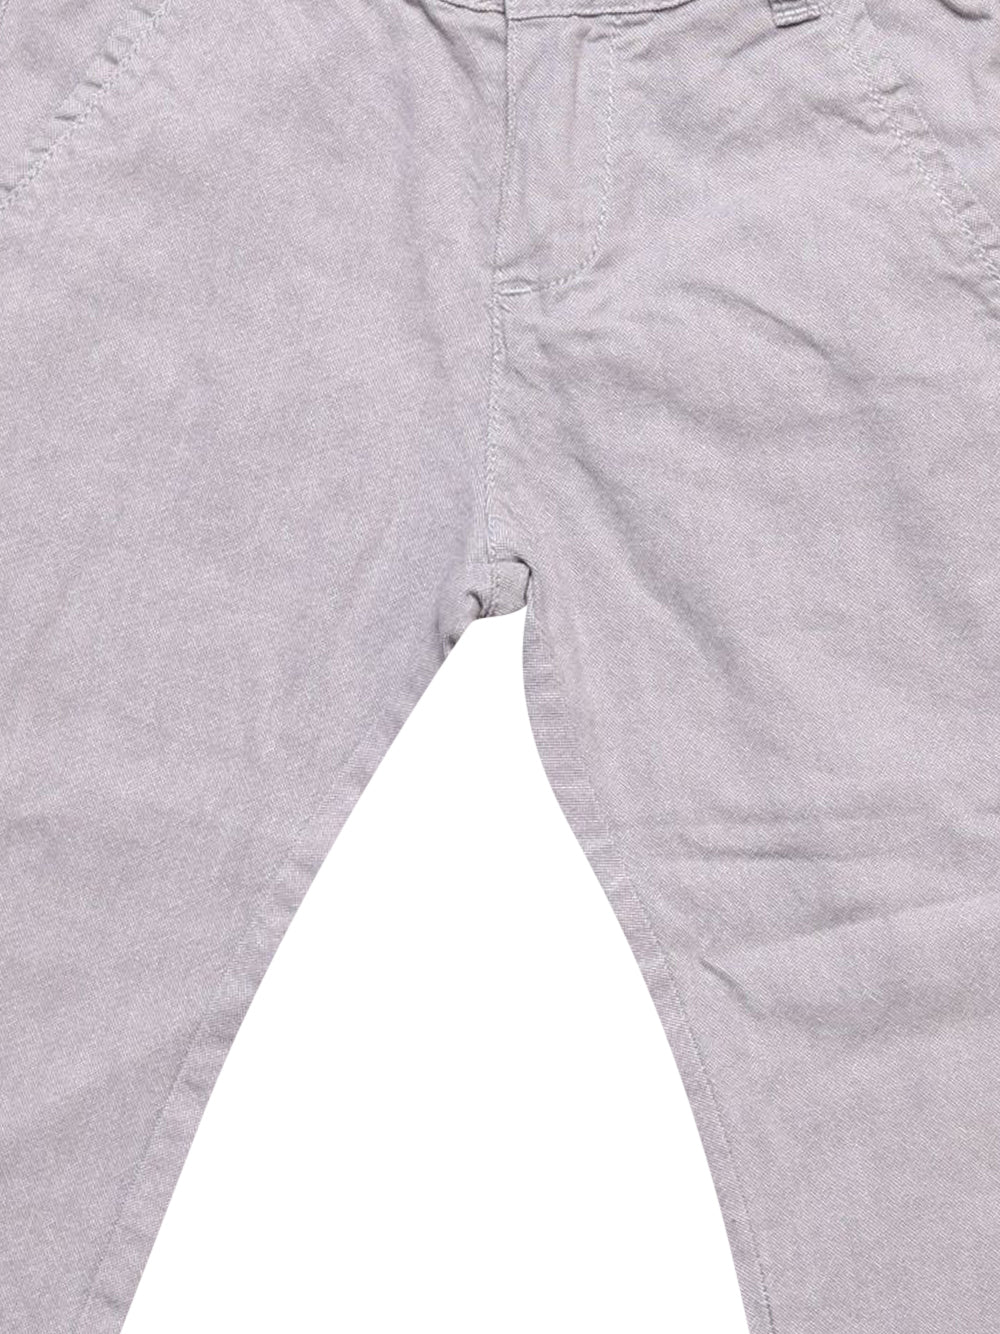 Detail photo of Preloved Chicco Grey Girl's trousers - size 18-24 mths